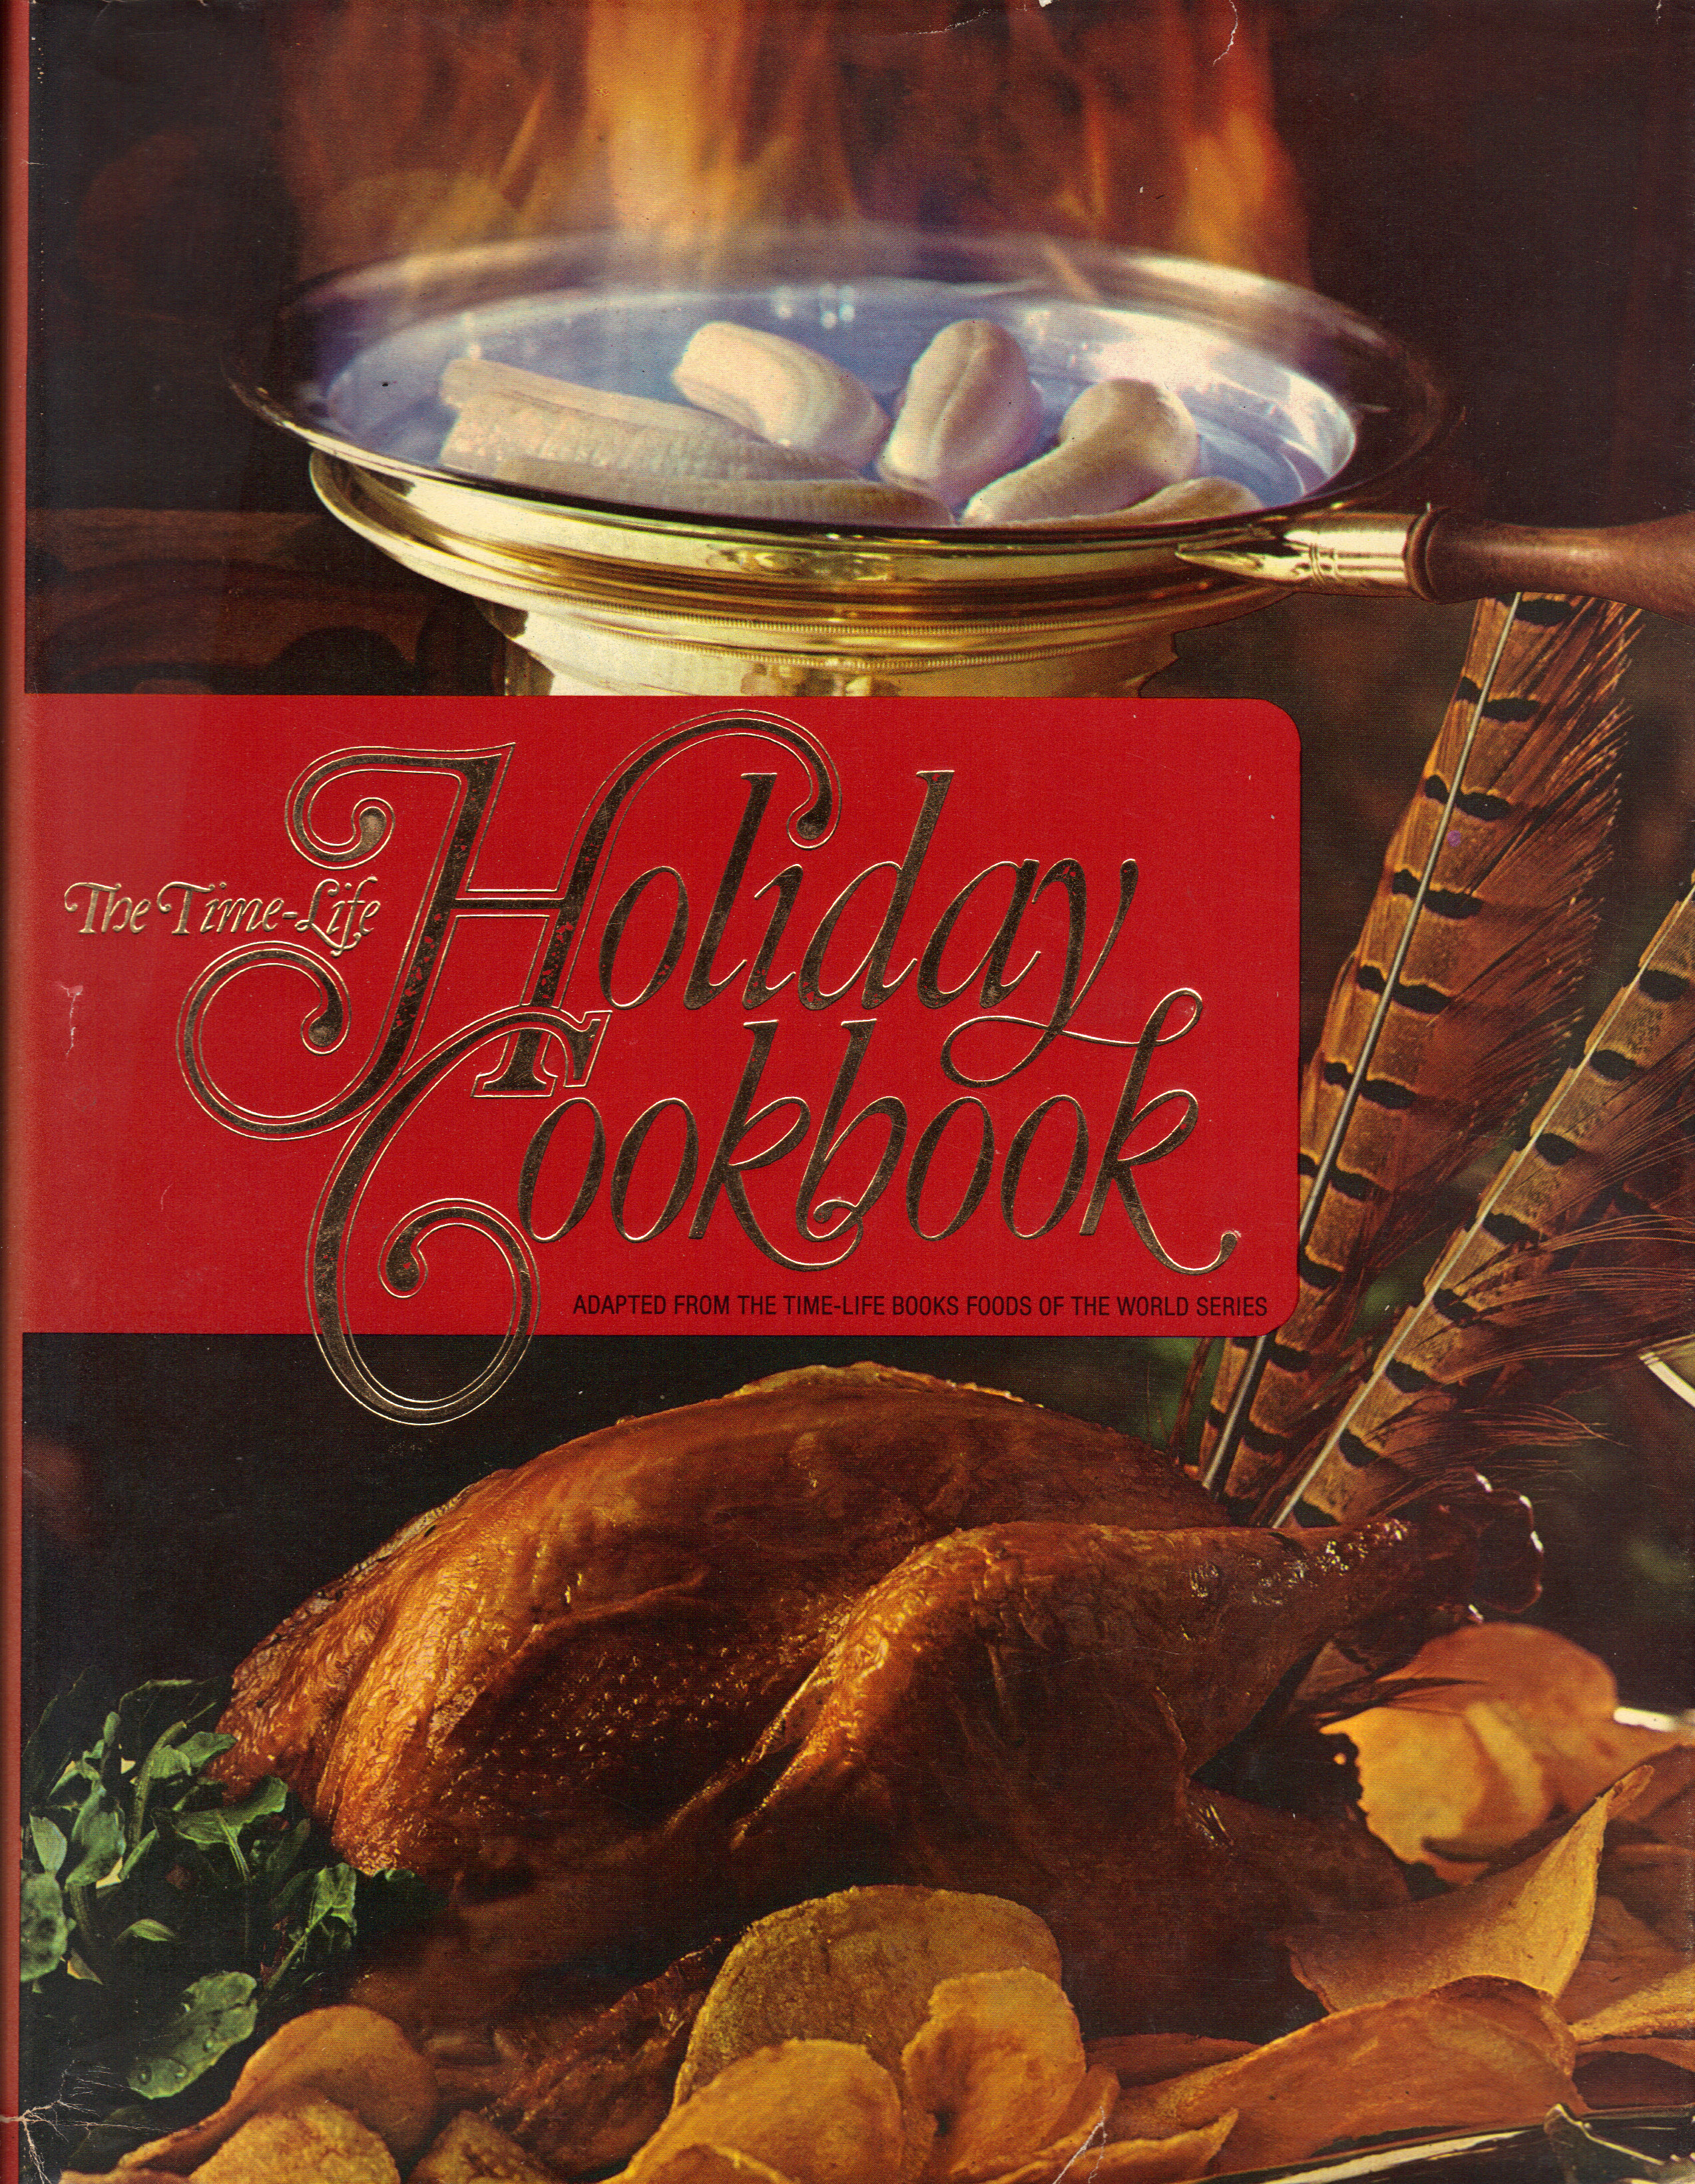 Image for THE TIME-LIFE HOLIDAY COOKBOOK